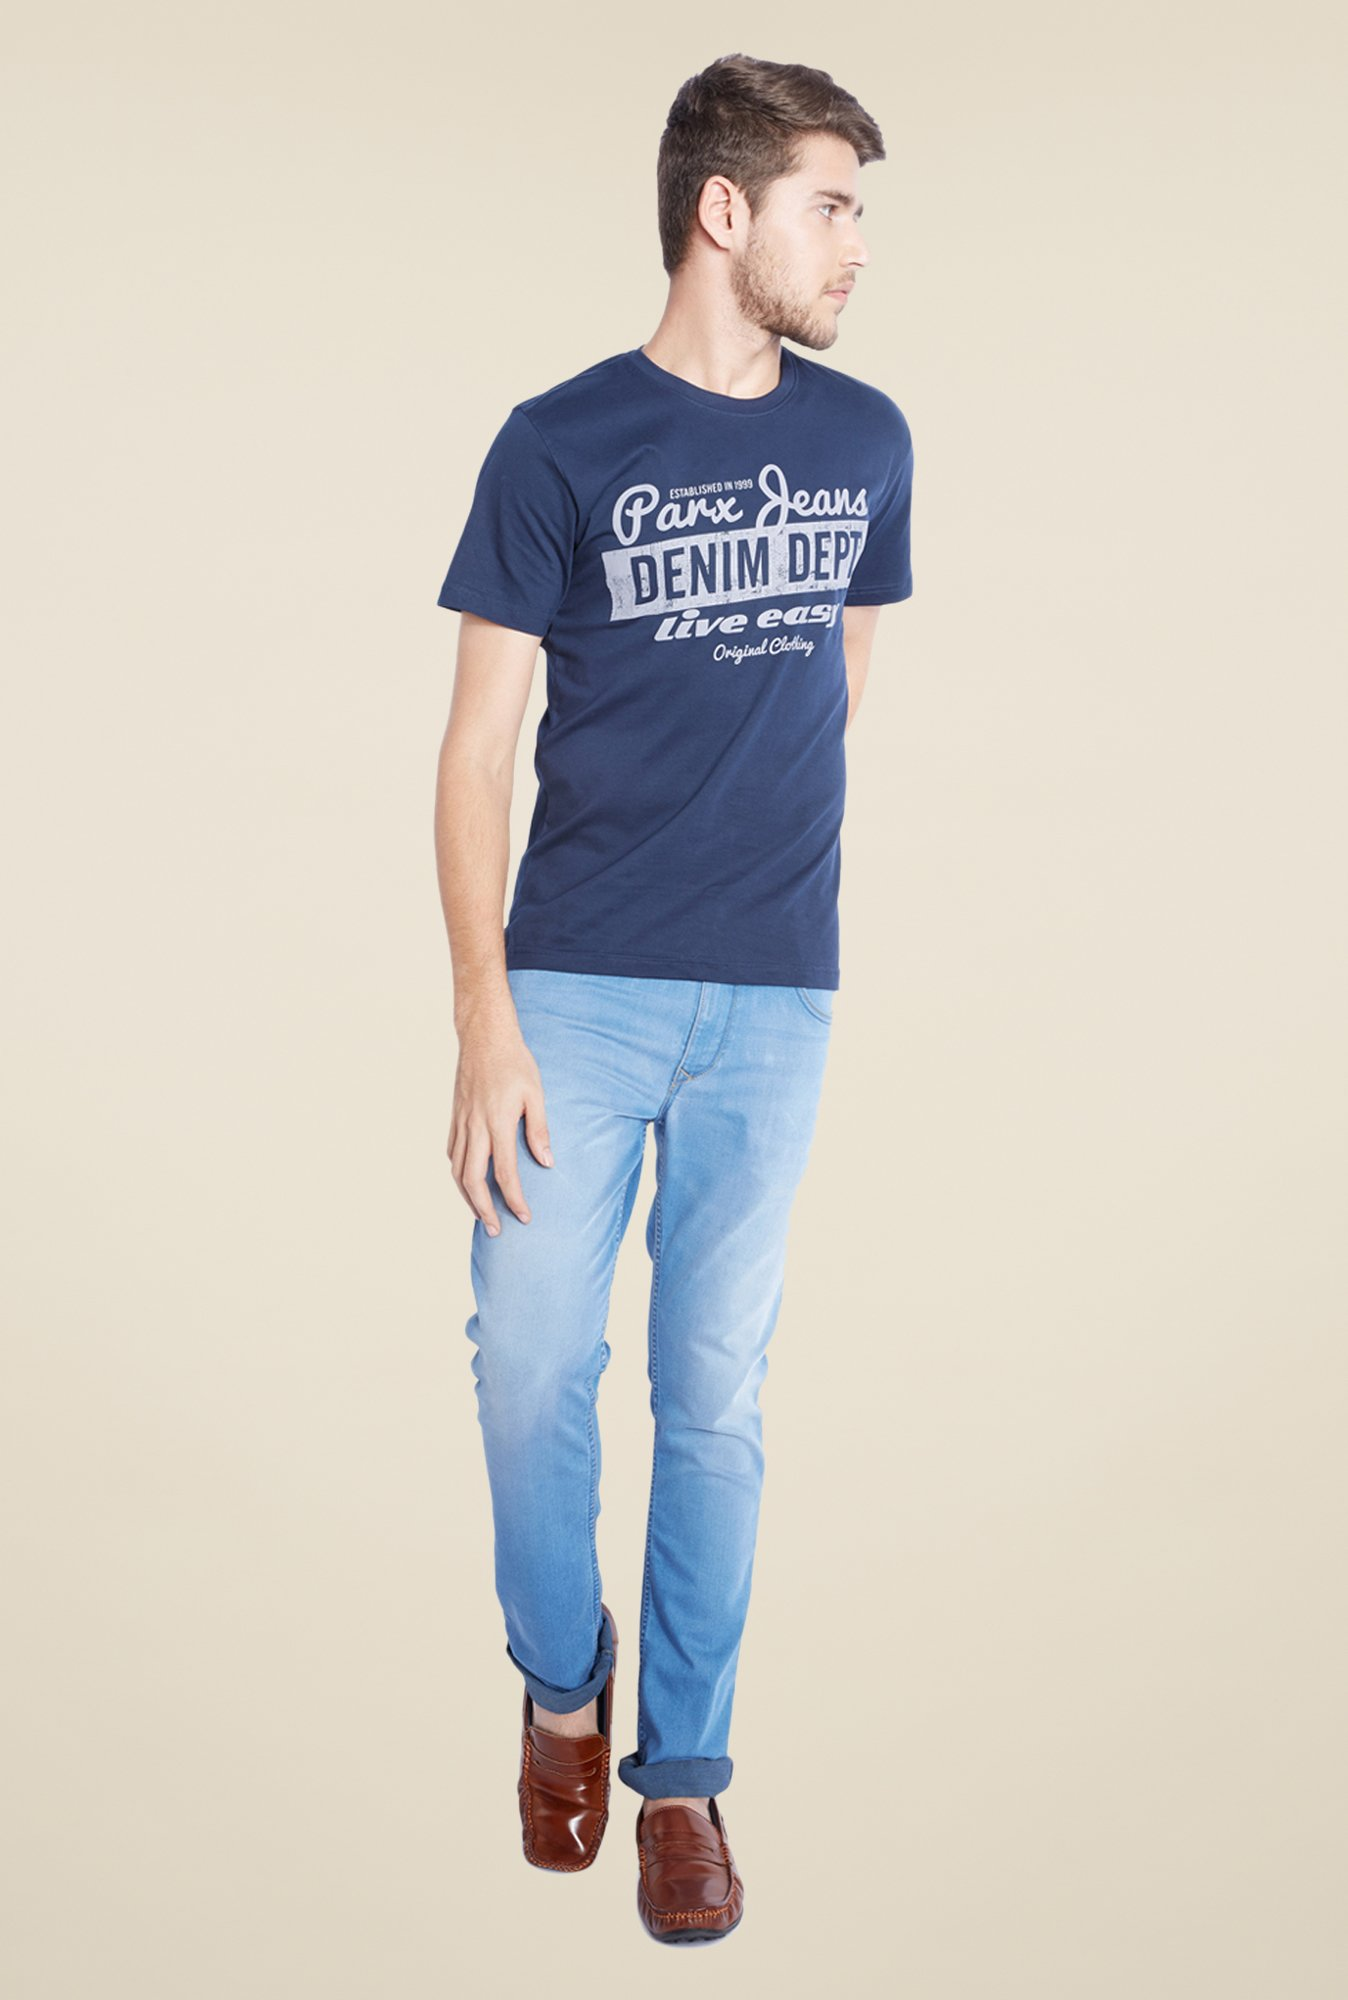 Parx Navy Graphic Printed Crew Neck T Shirt